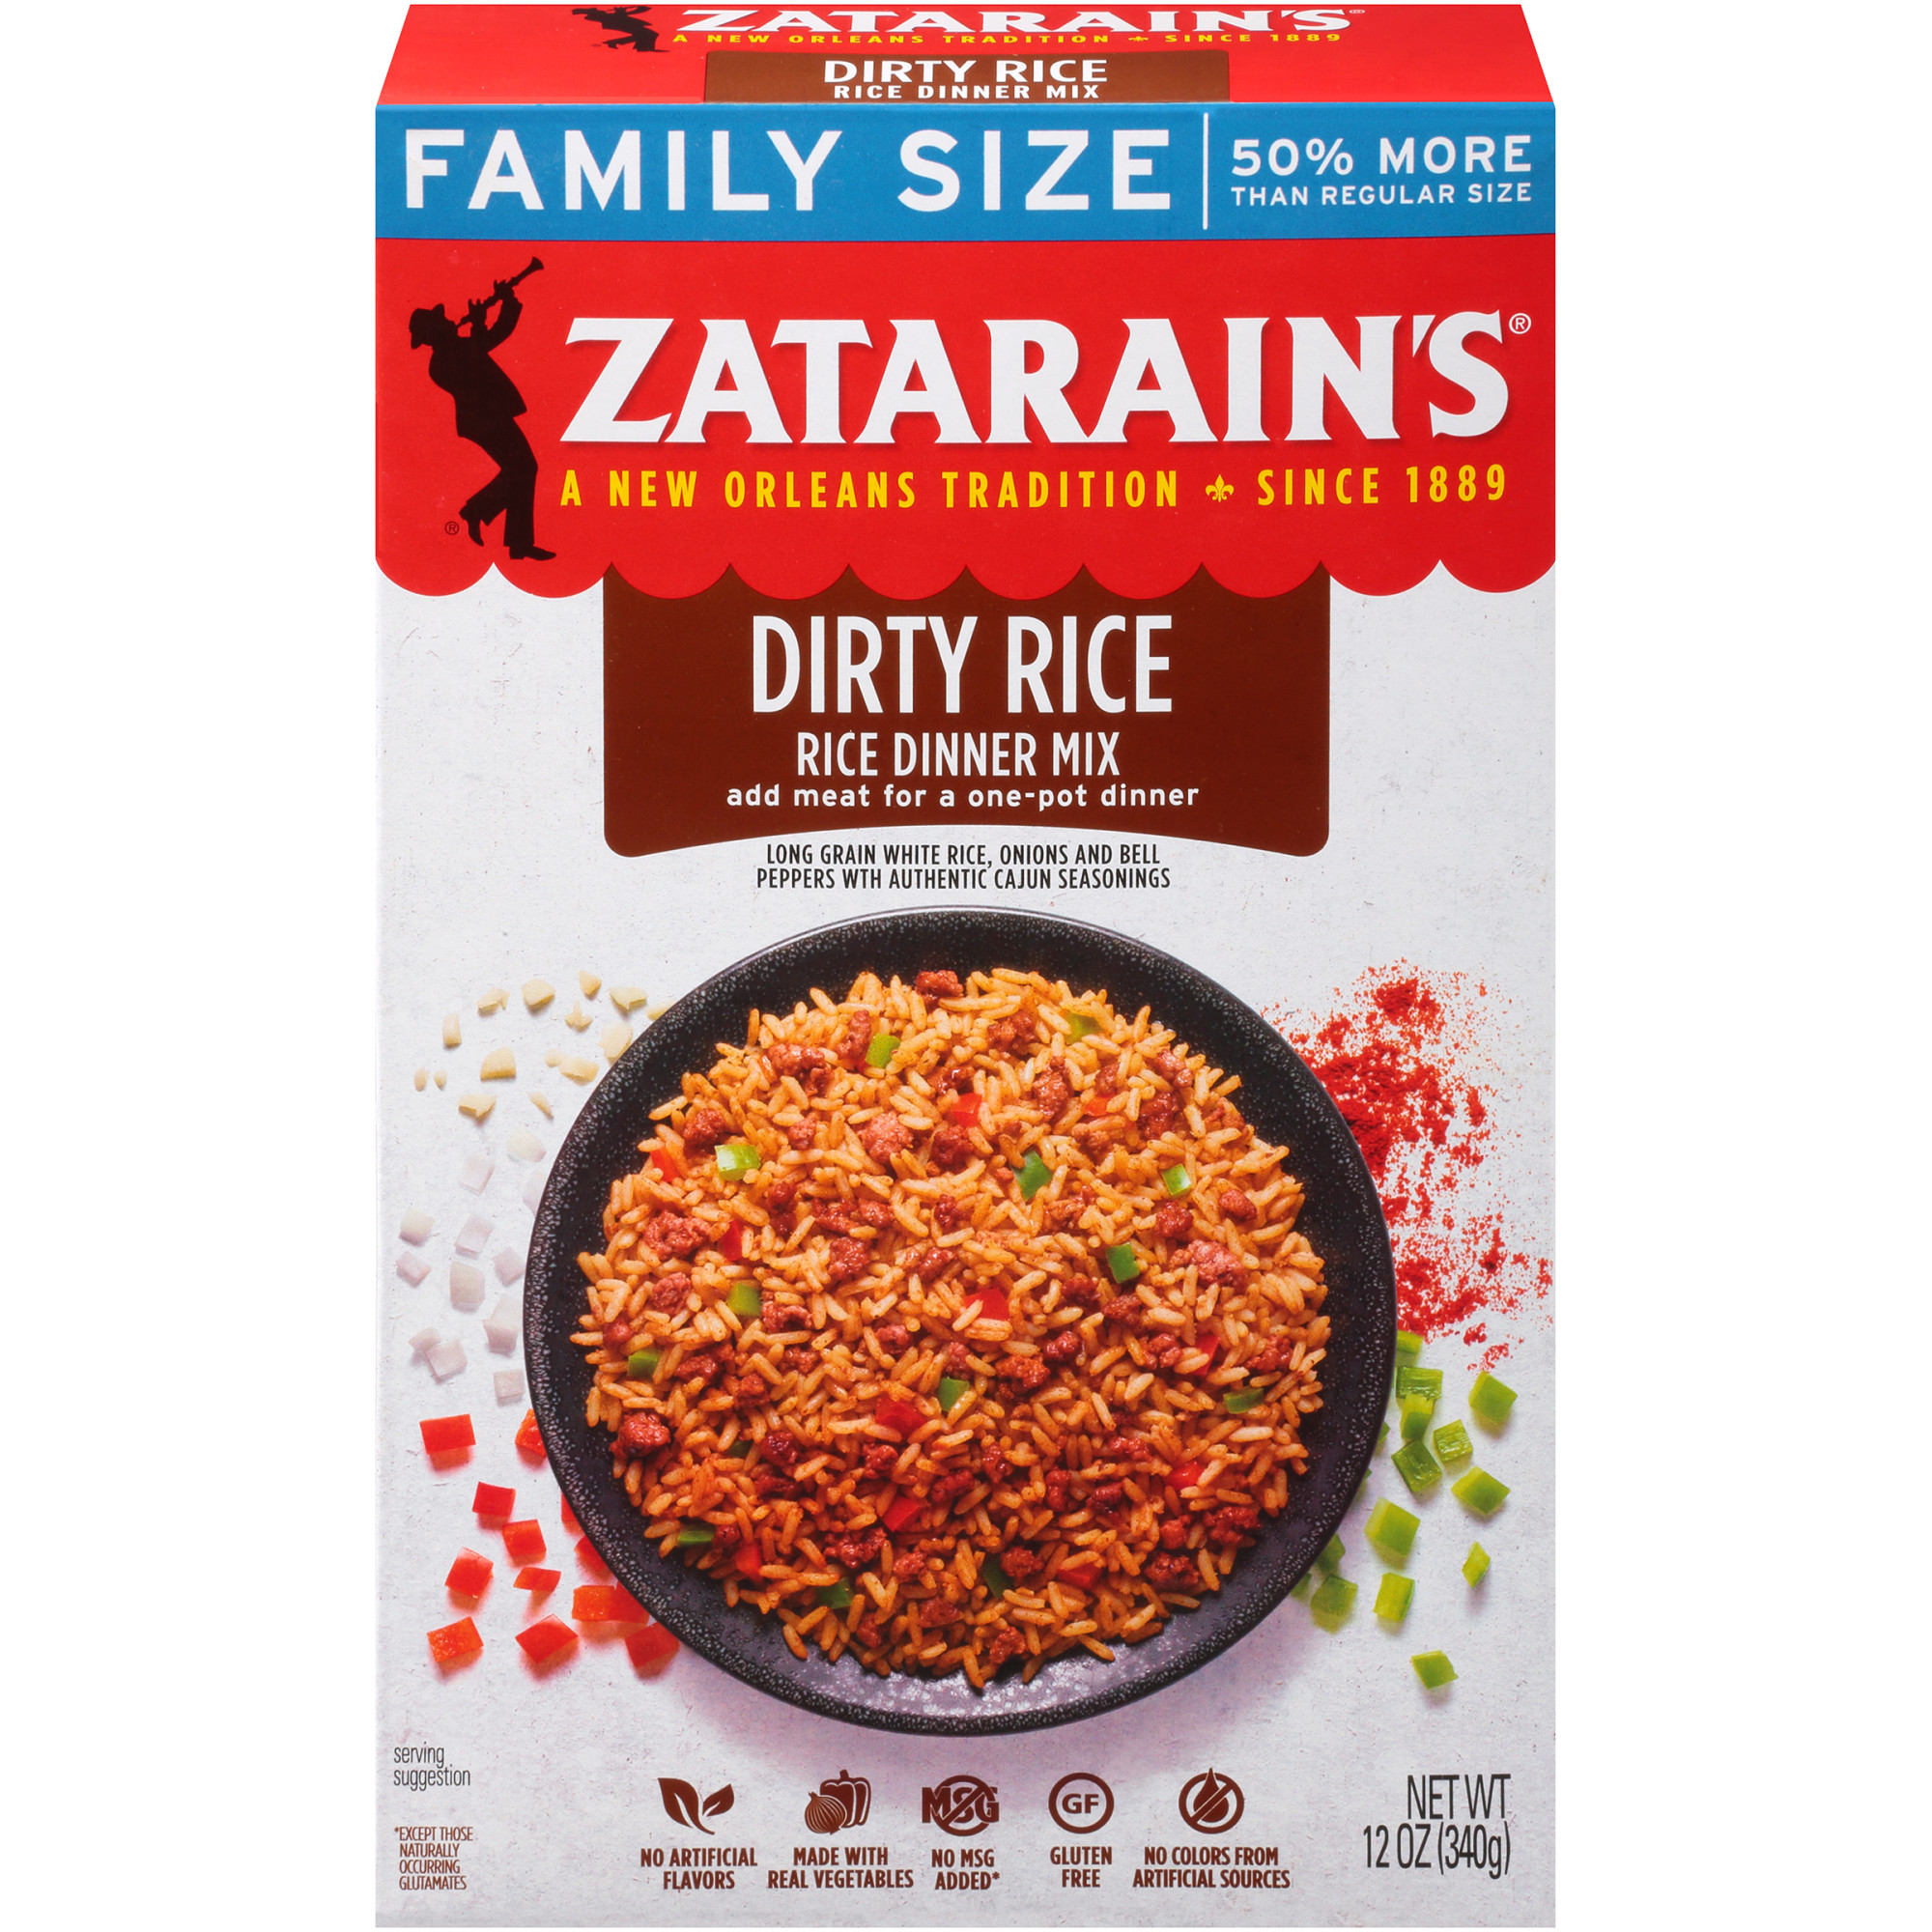 Zatarain's Dirty Rice Family Size, 12 oz